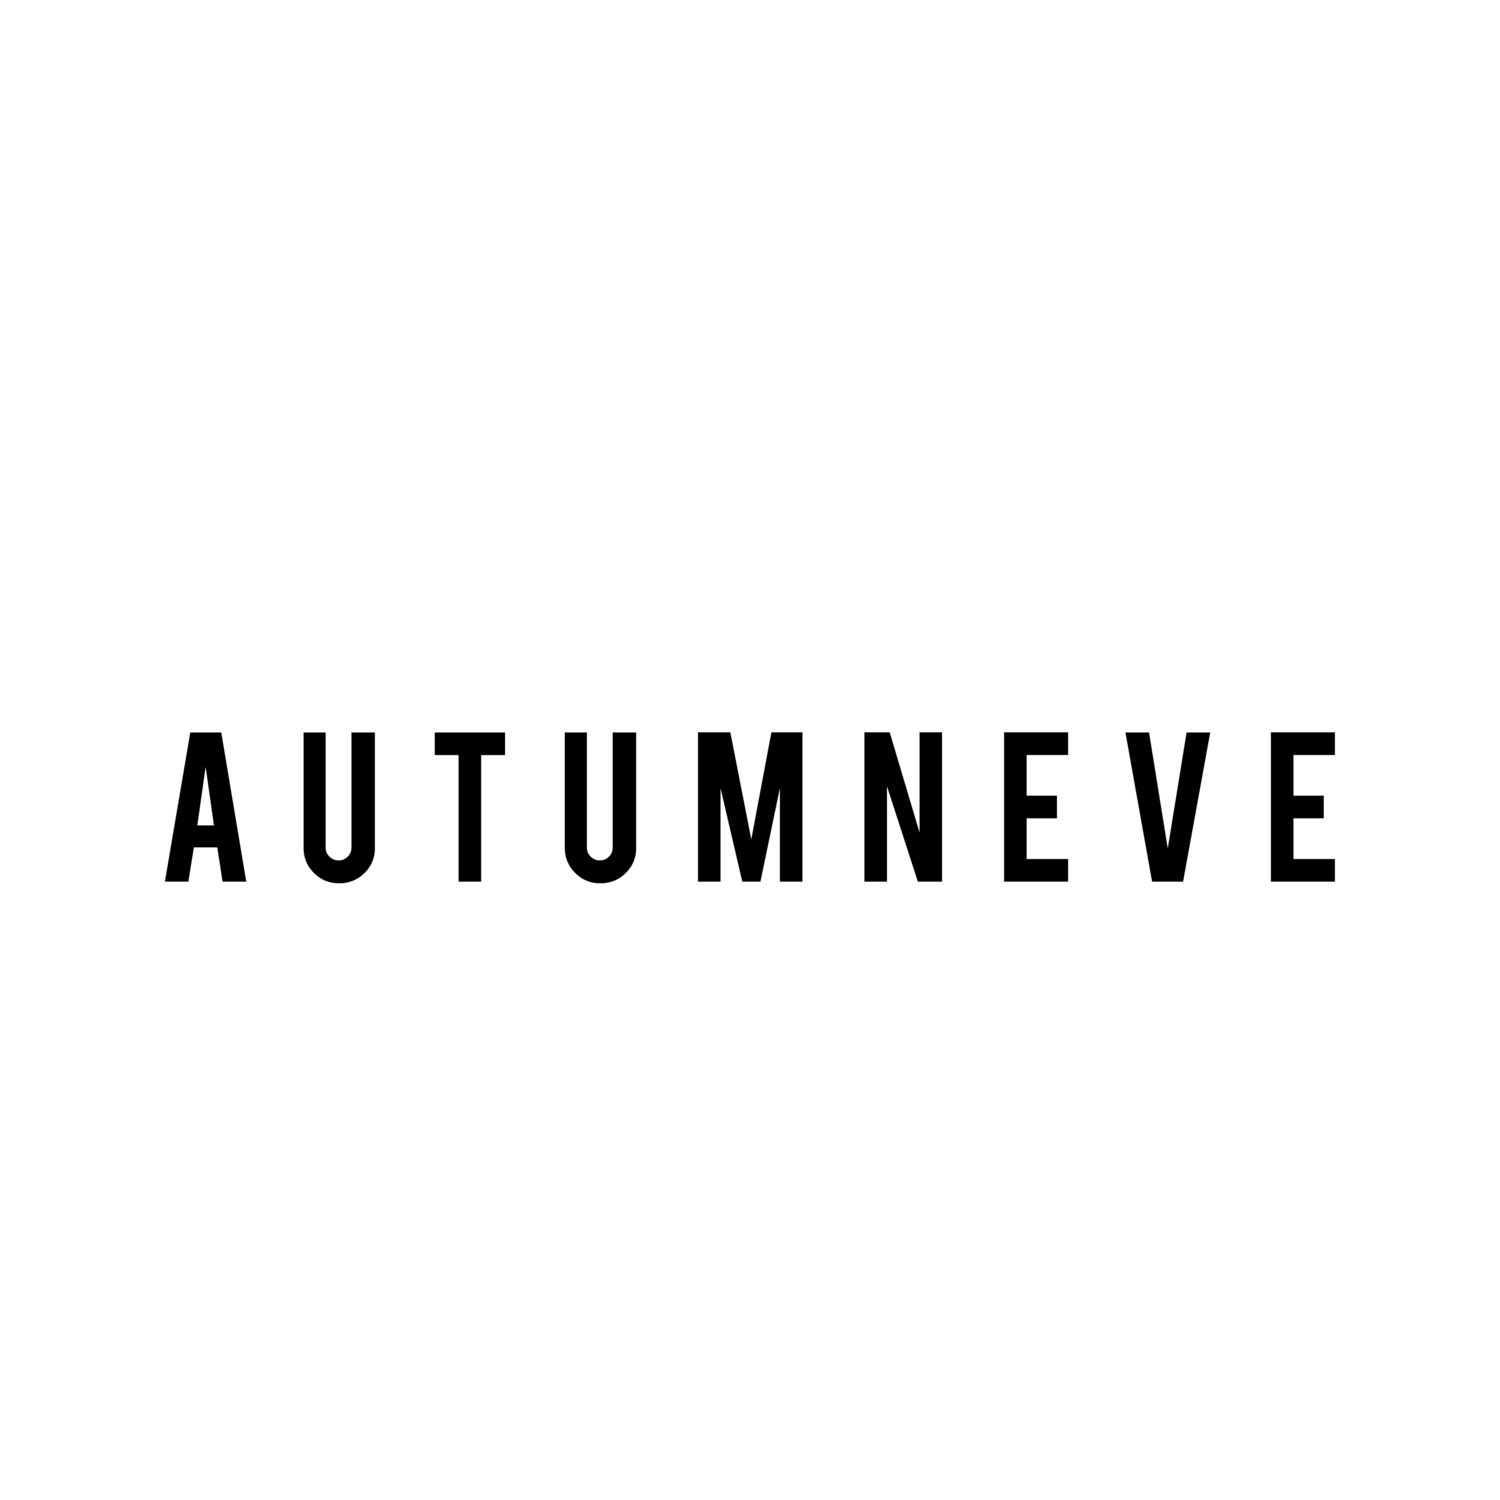 AutumnEve Records